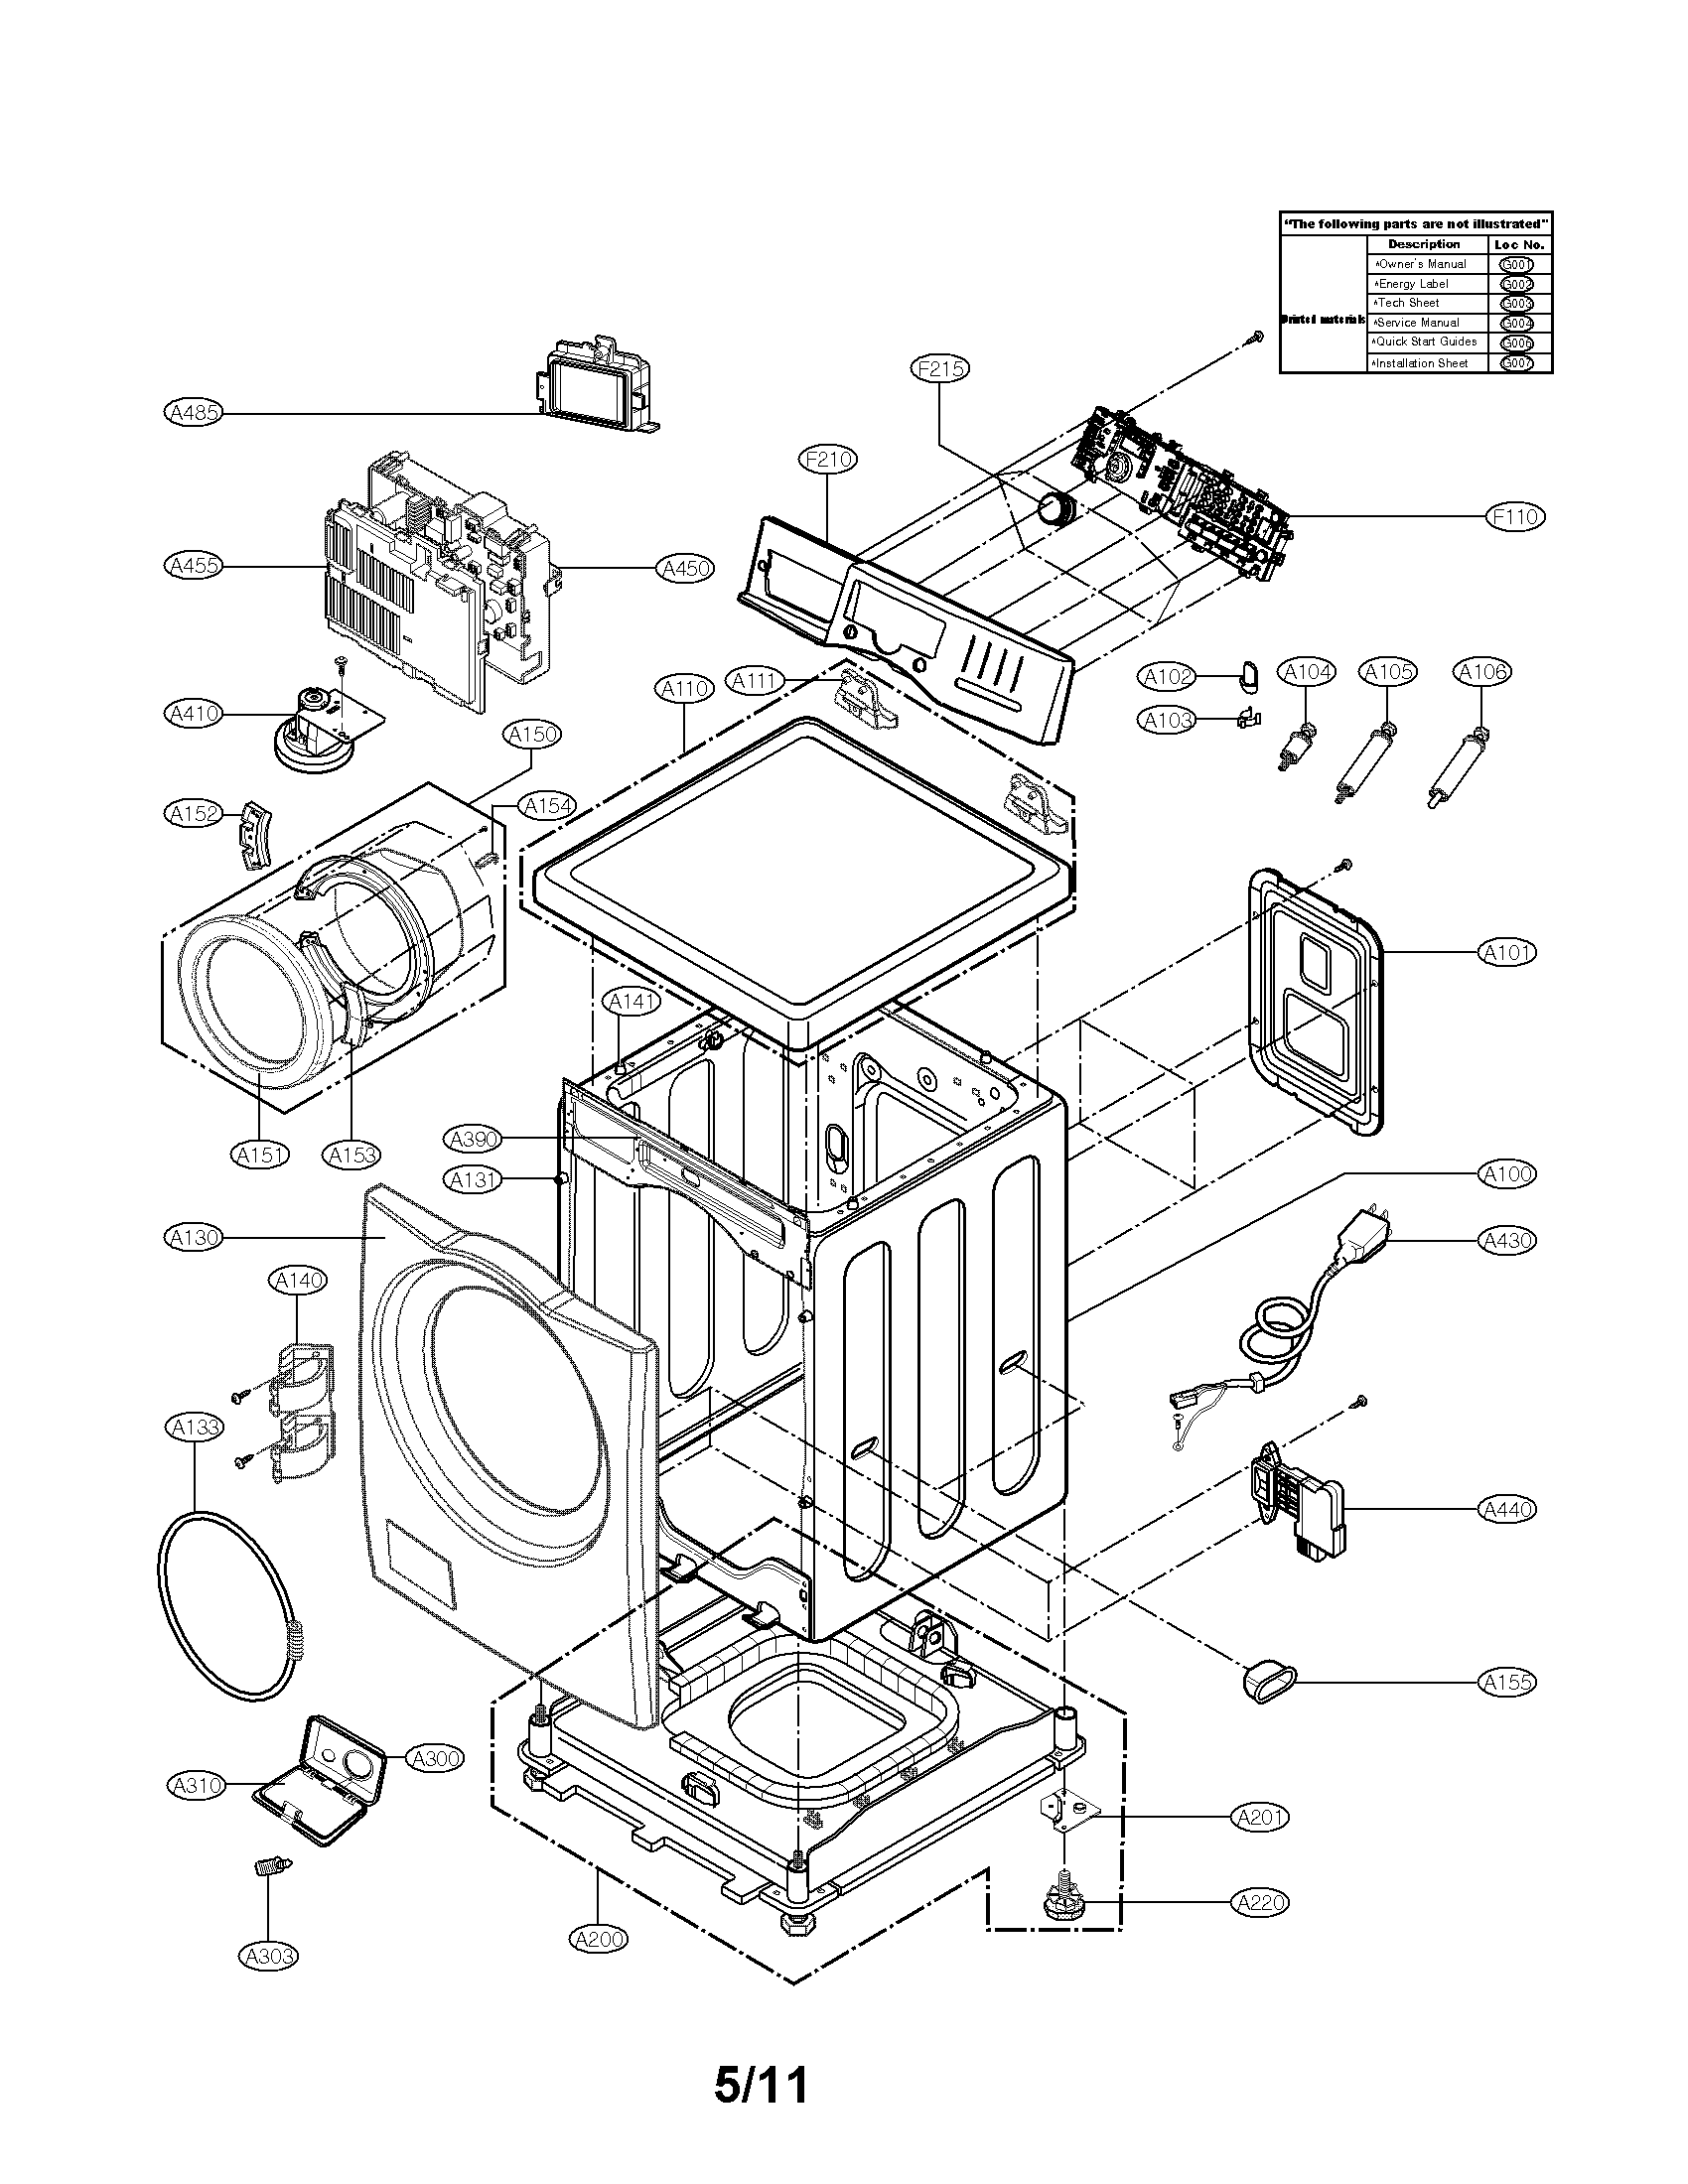 Kenmore Washer 40272900 Wire Diagram : 36 Wiring Diagram